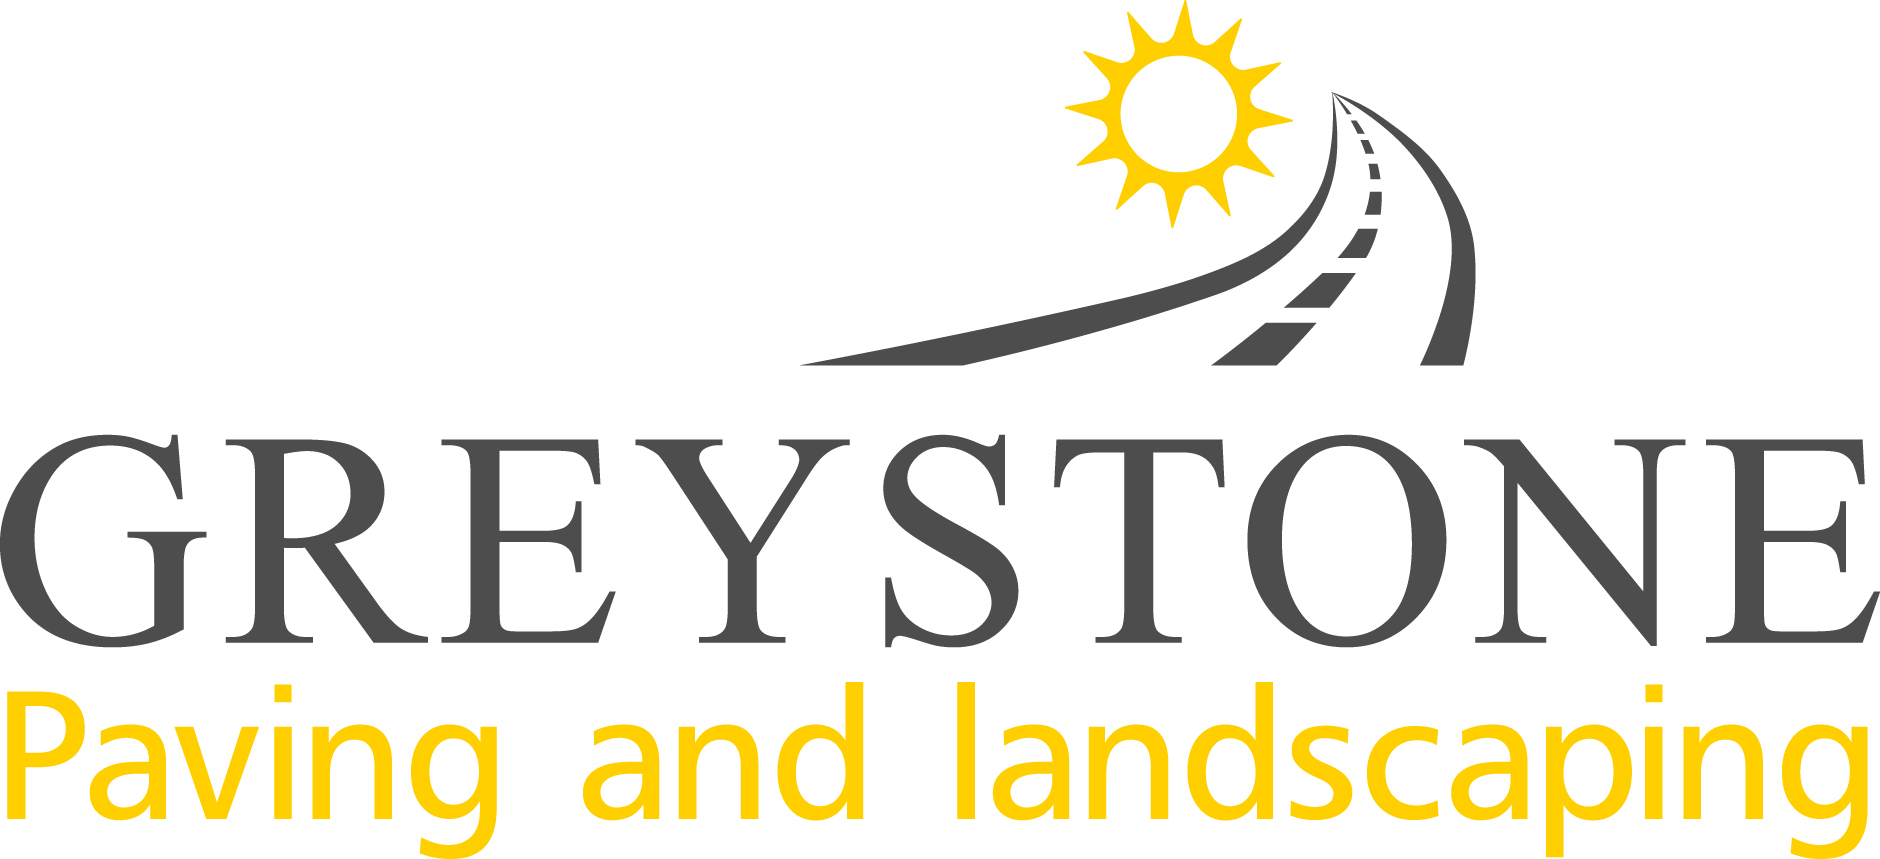 graystone paving and landscaping - West Yorkshire, West Yorkshire BD16 4ER - 08000 236212 | ShowMeLocal.com